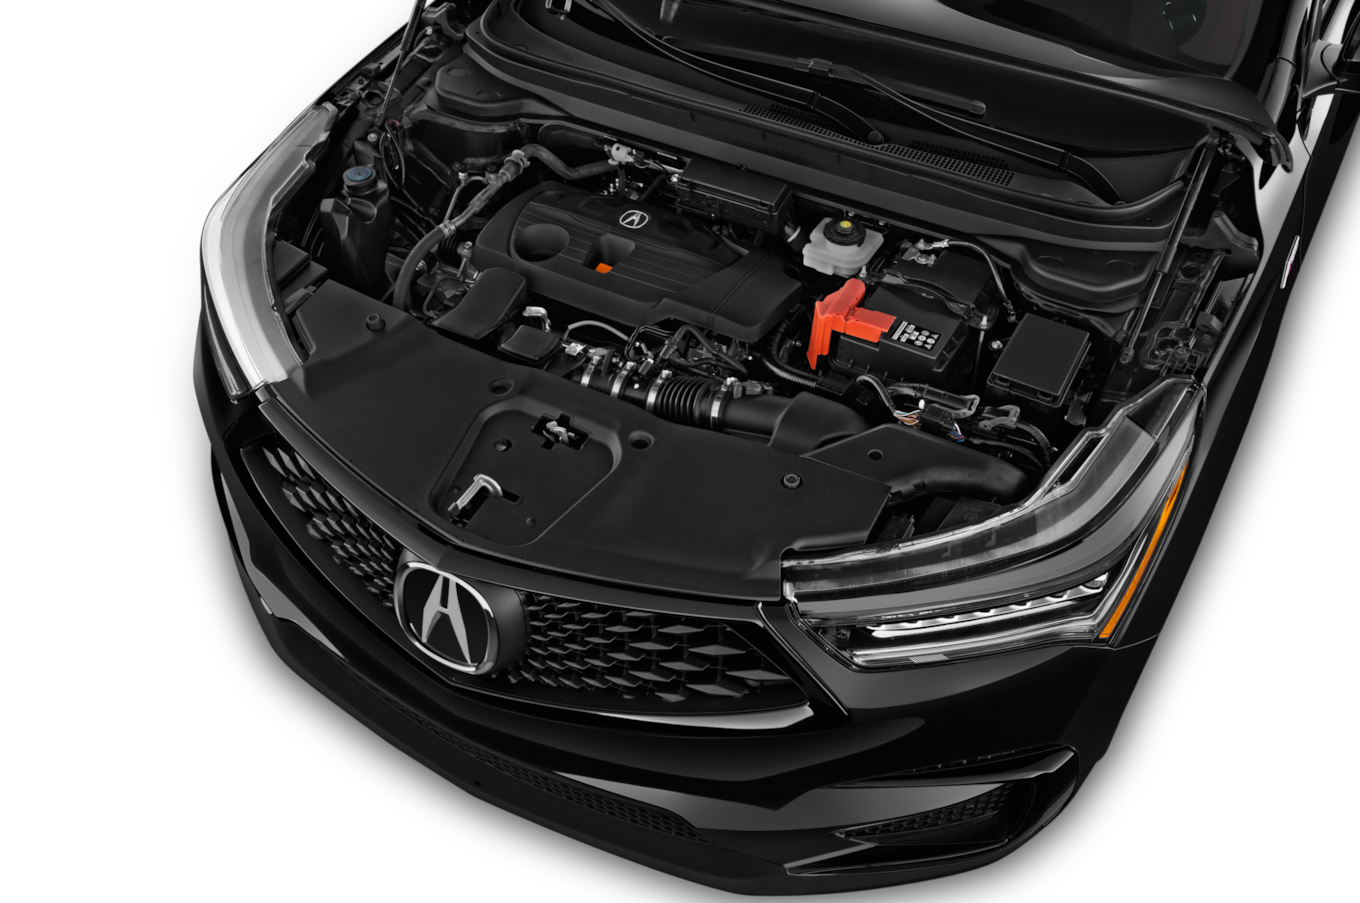 54 New 2019 Acura Rdx Engine Prices